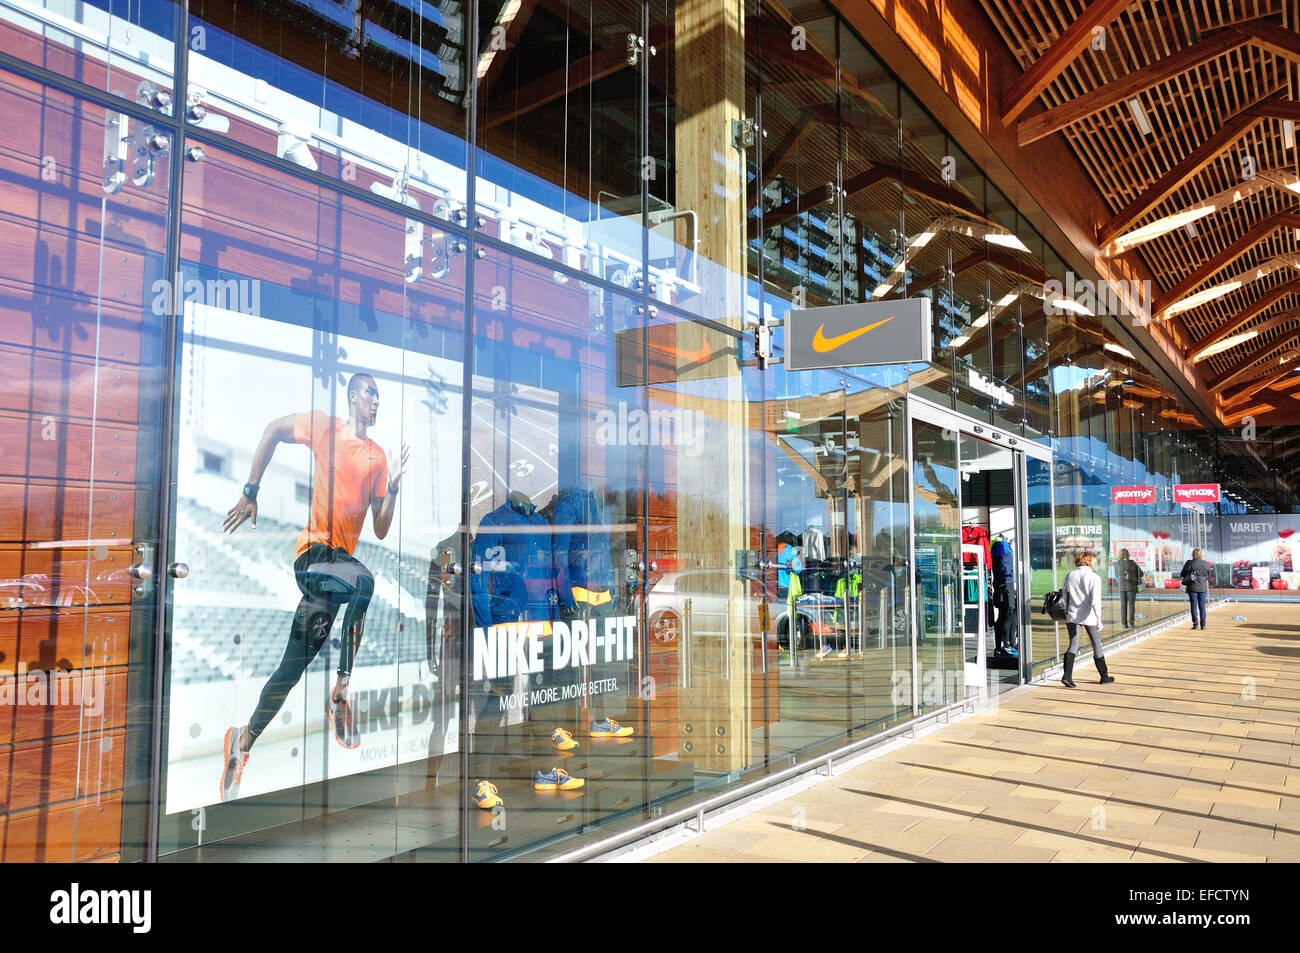 8f0bfc84ff Nike Factory Shop, The Bishop Shopping Centre, Taplow Stock Photo ...